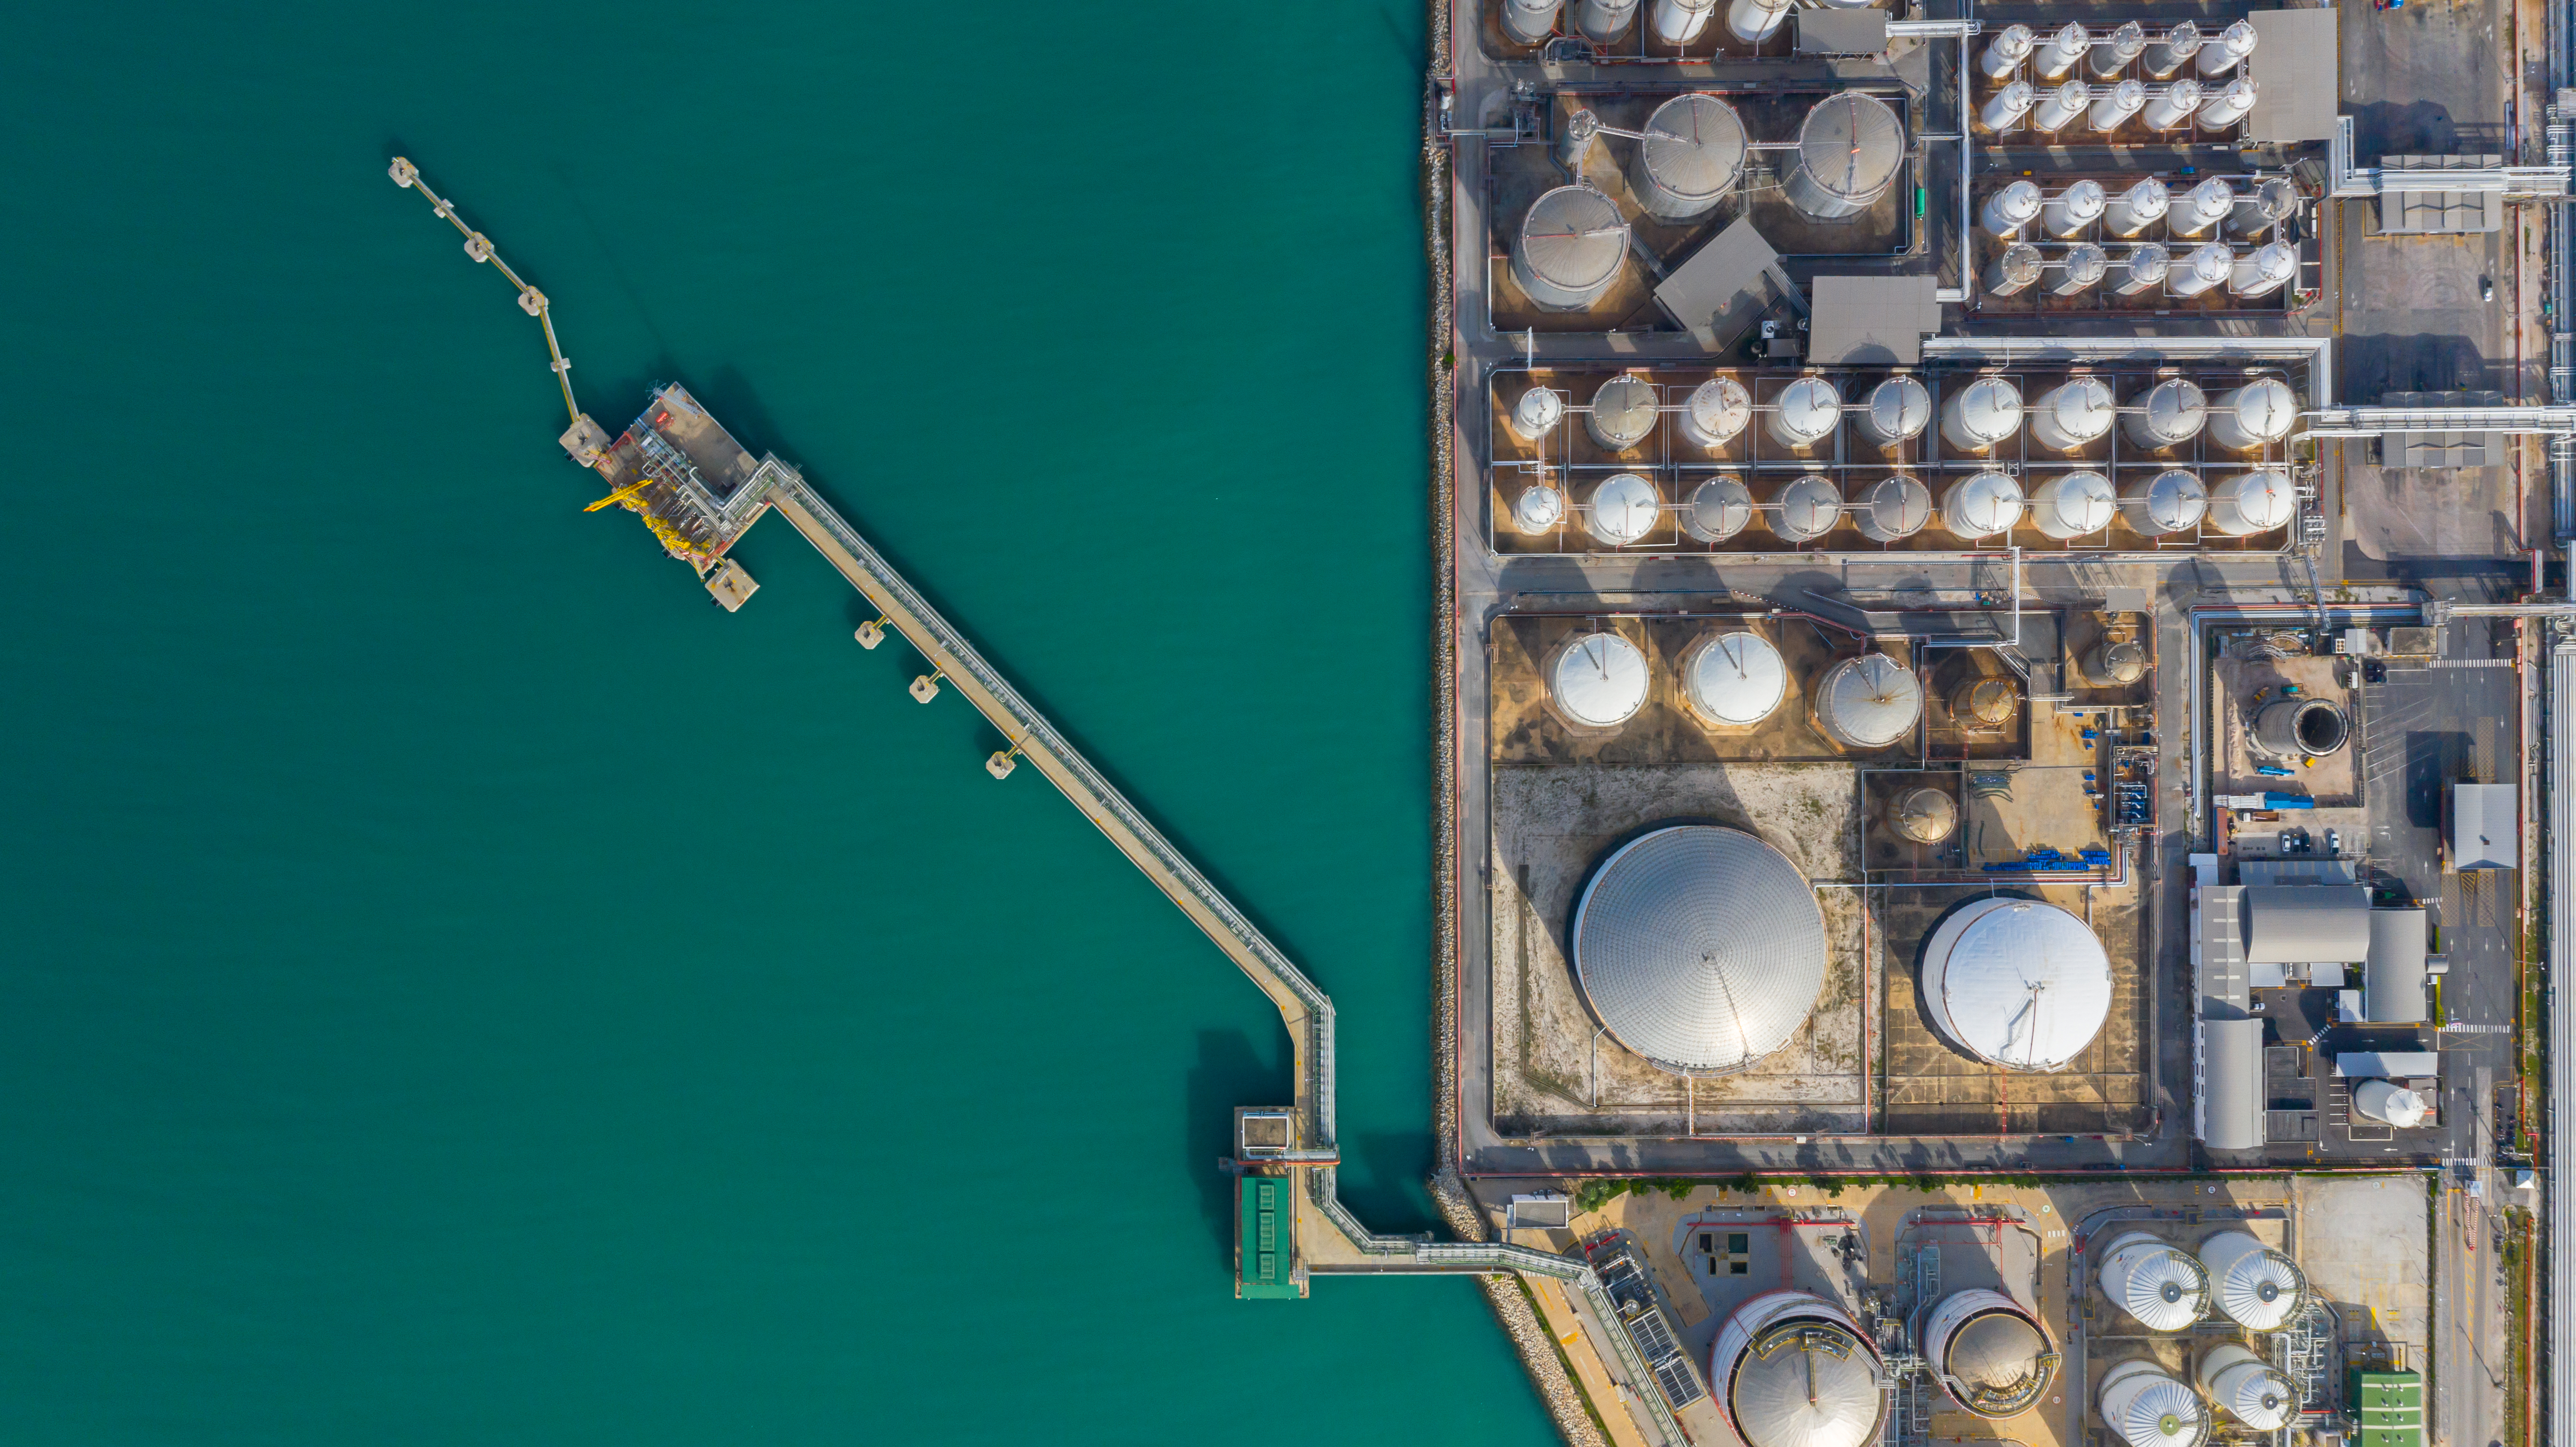 Aerial view of tank terminal with lots of oil storage tank and petrochemical storage tank in the harbour, Industrial tank storage aerial view.